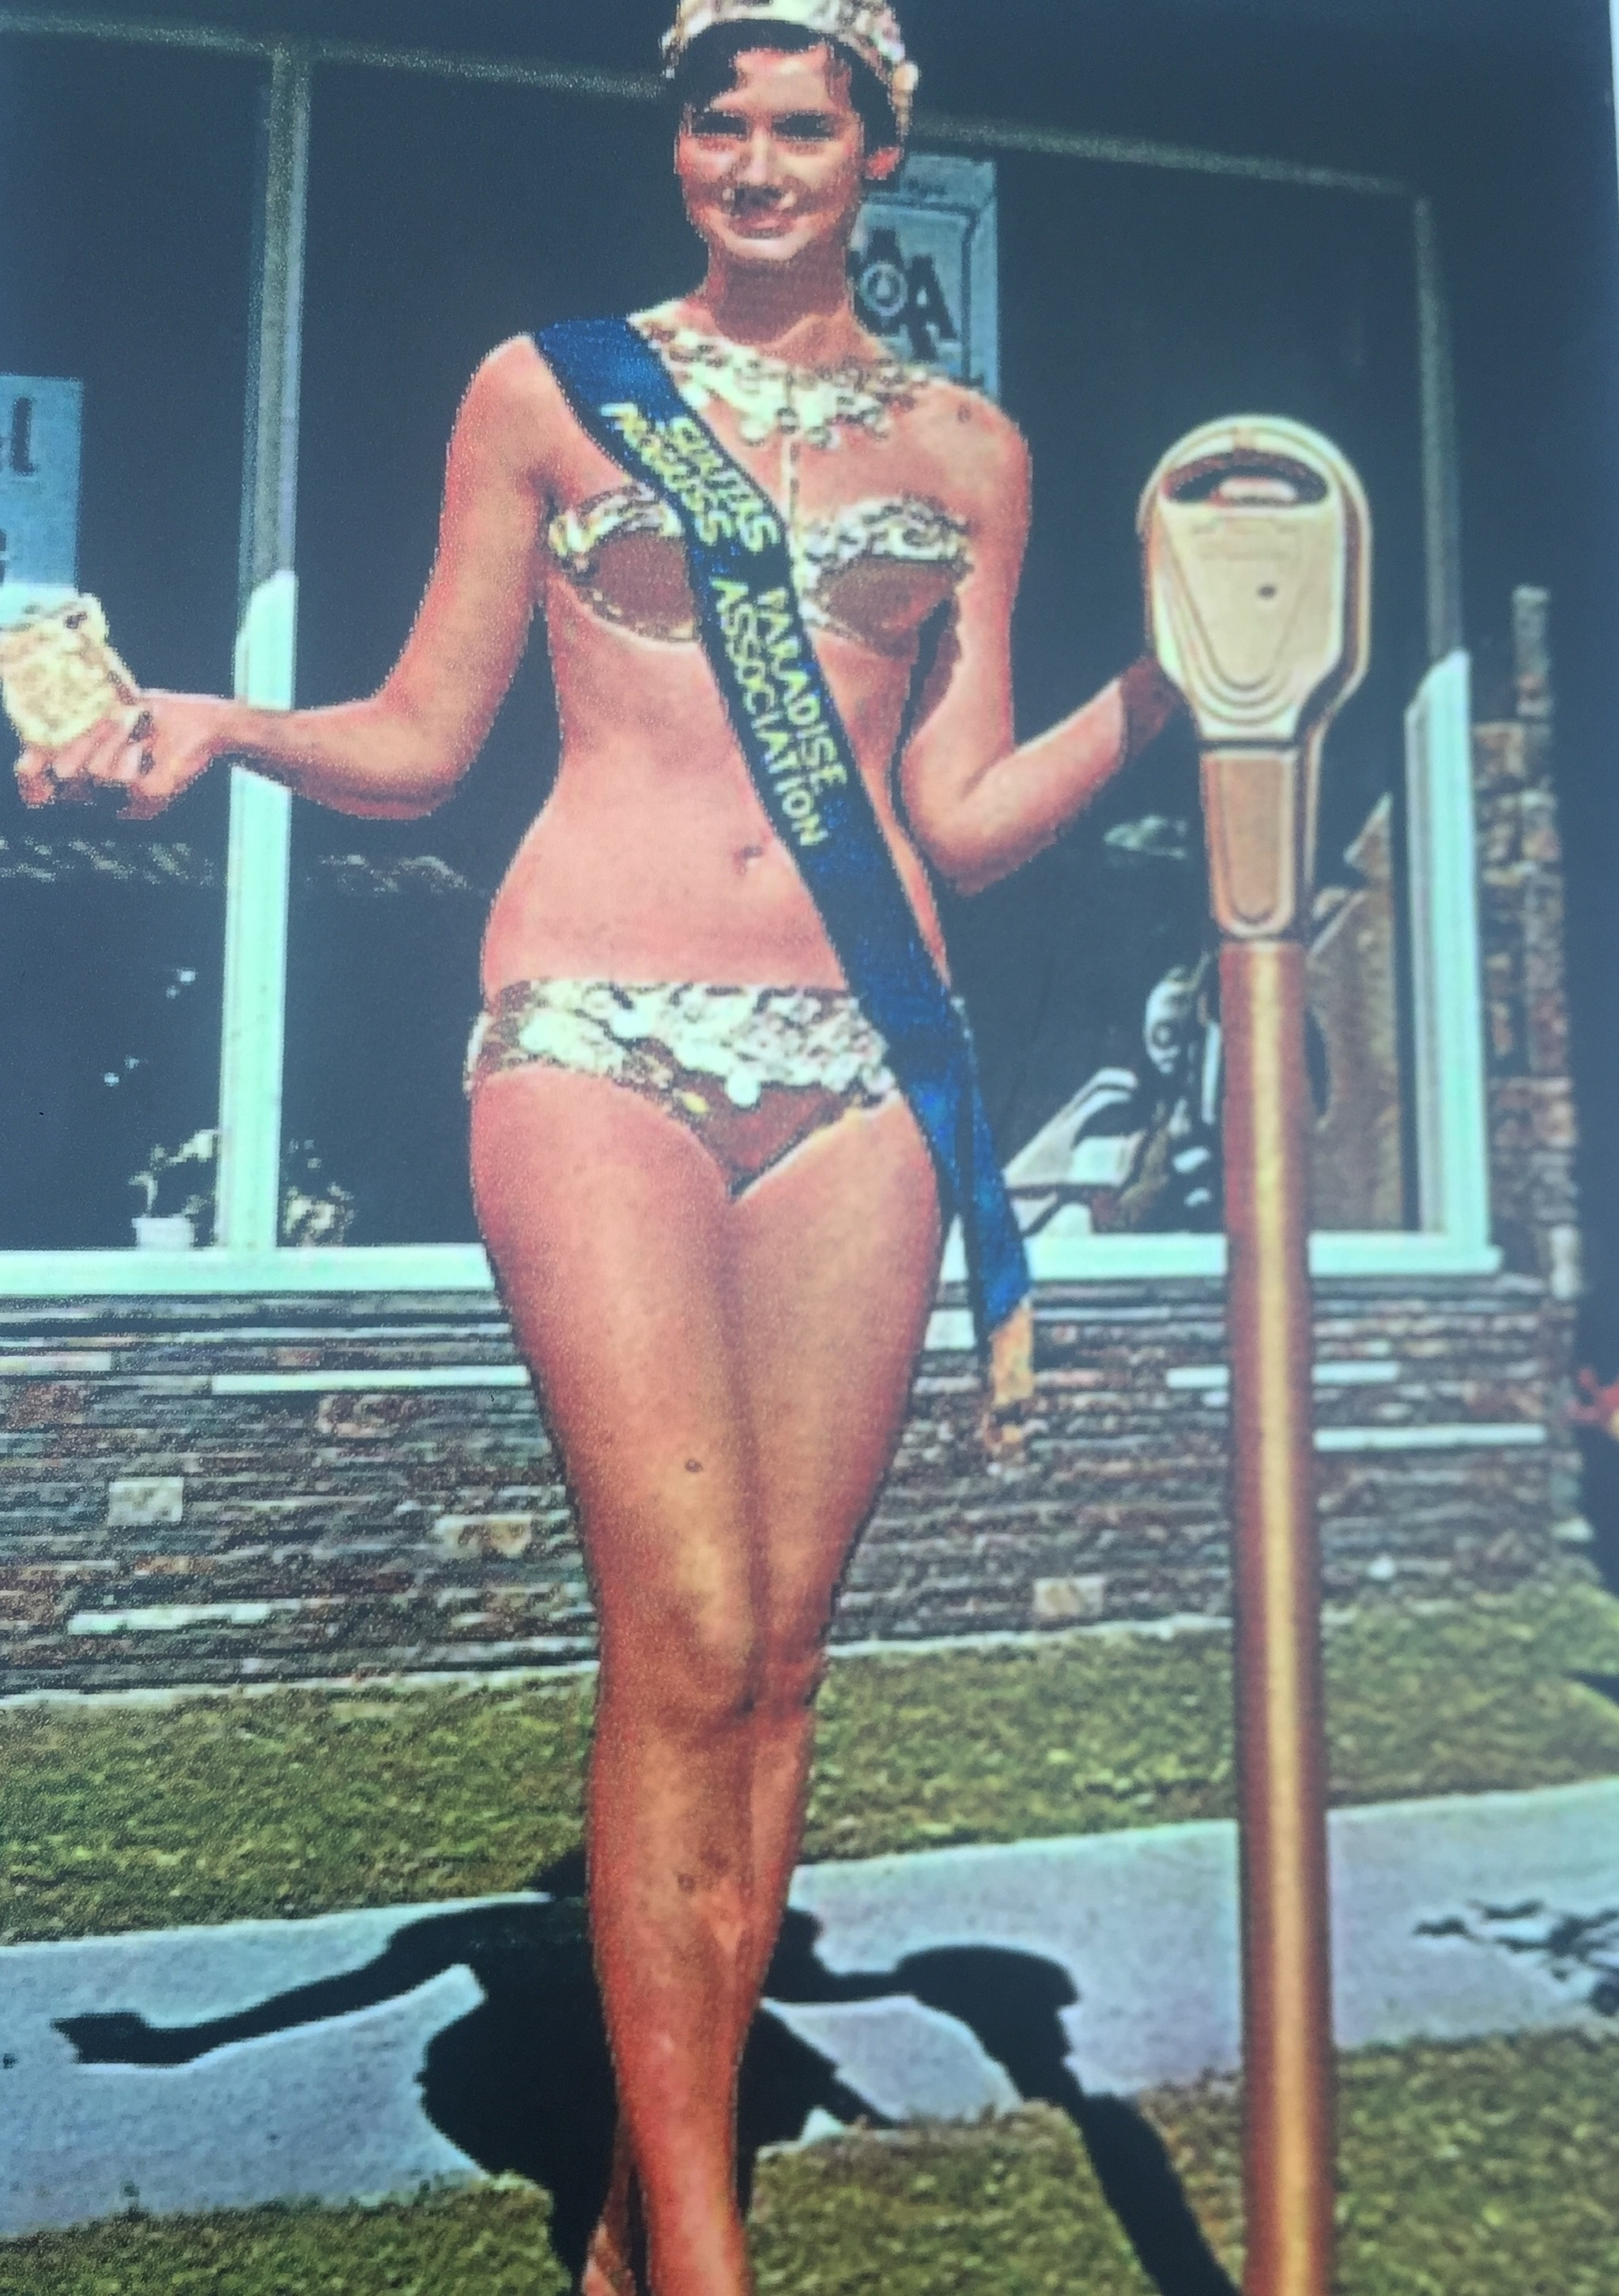 Bikini-clad meter maids were introduced in the Surfer's Paradise in 1965 by Surfers Paradise Progress Association to put a positive spin on new parking regulations. To avoid tickets being issued for expired parking, the meter maids dispensed coins into the meter and left a calling card under the windscreen wiper. The meter maids are still a part of Surfer's Paradise.